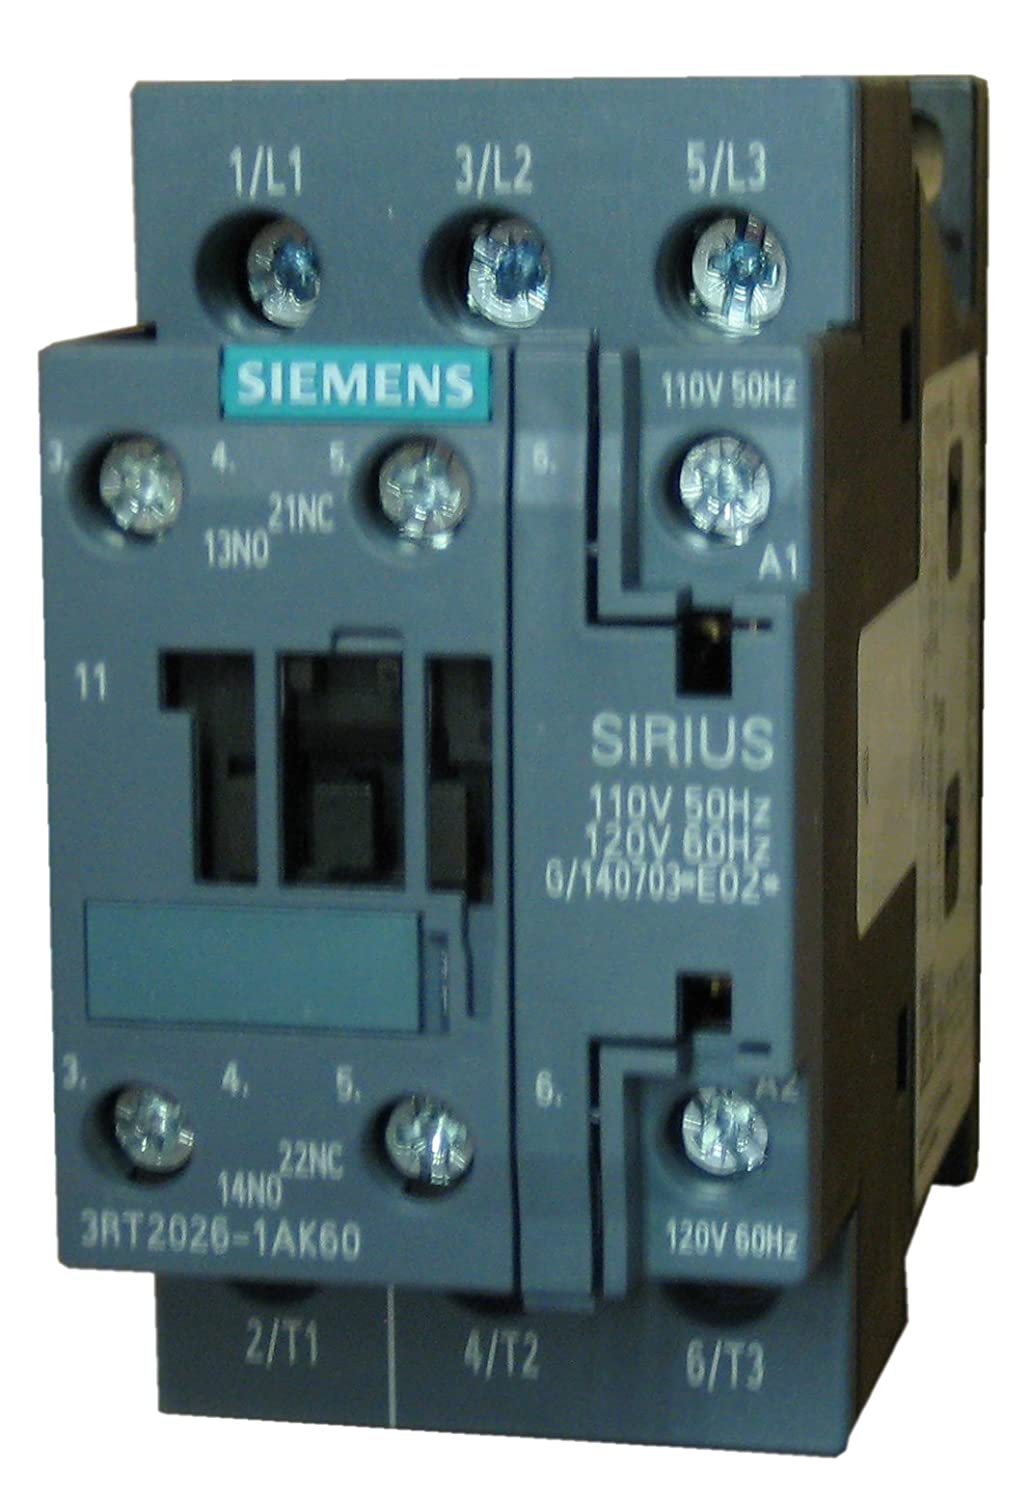 Siemens 3RT2026-1AK60 3 pole, 25 AMP contactor rated 7.5 H.P @ 230v ...